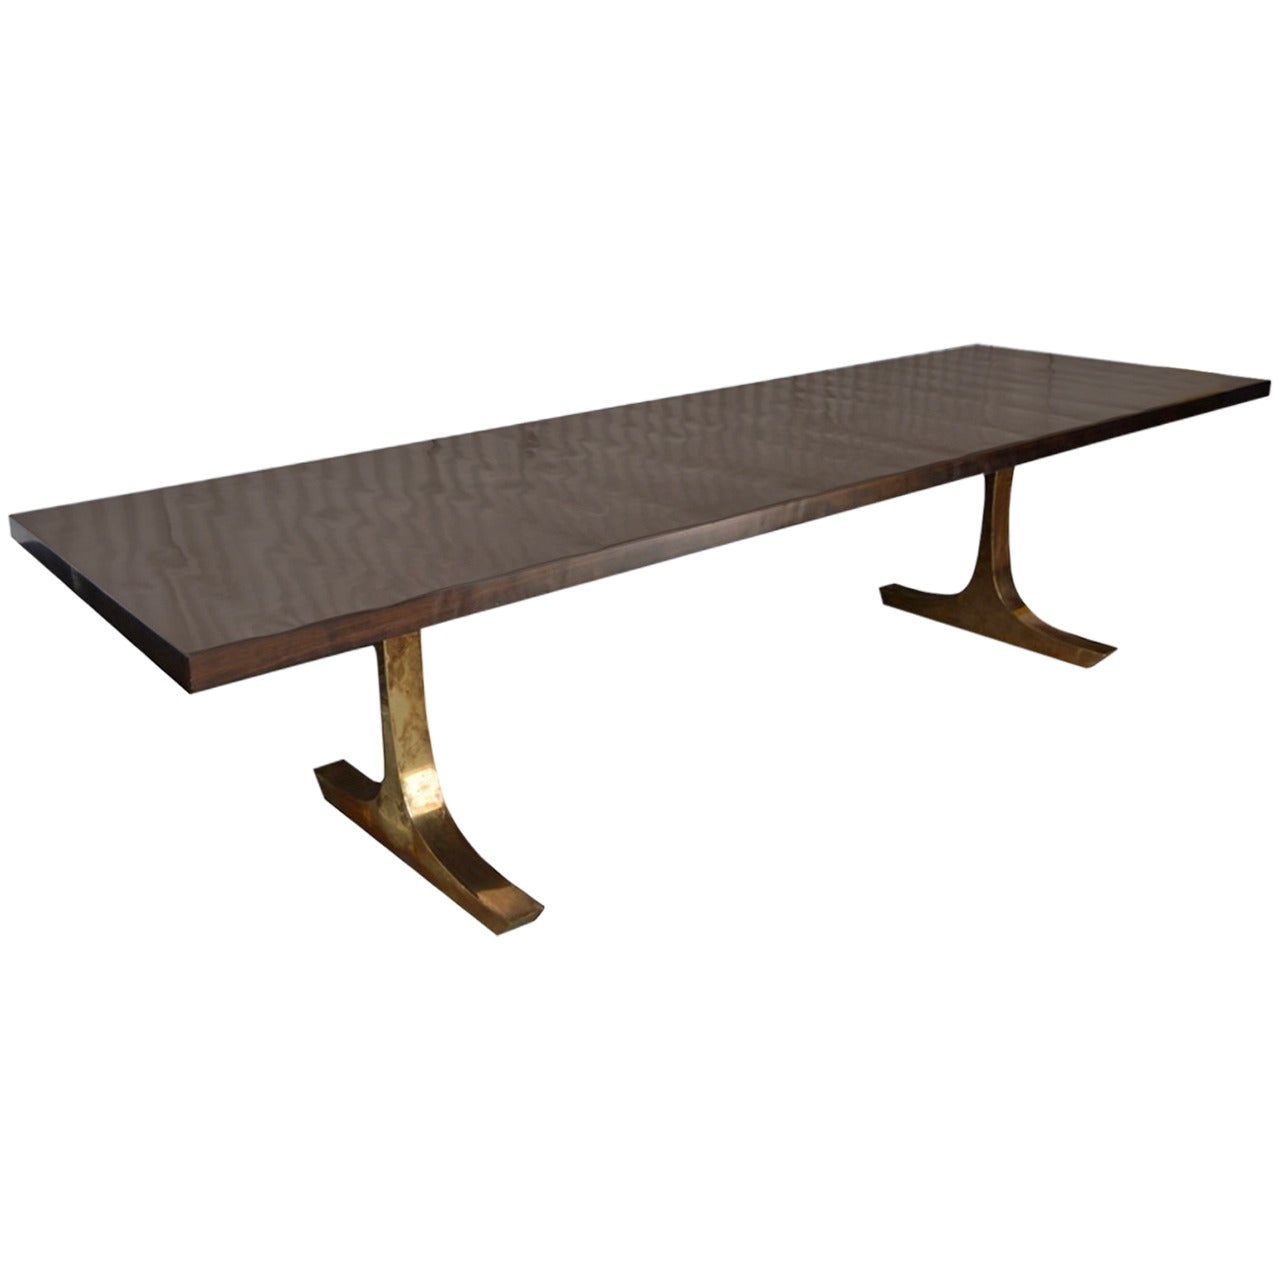 Andrianna Shamaris French Polished Dining Table With Bronze Legs